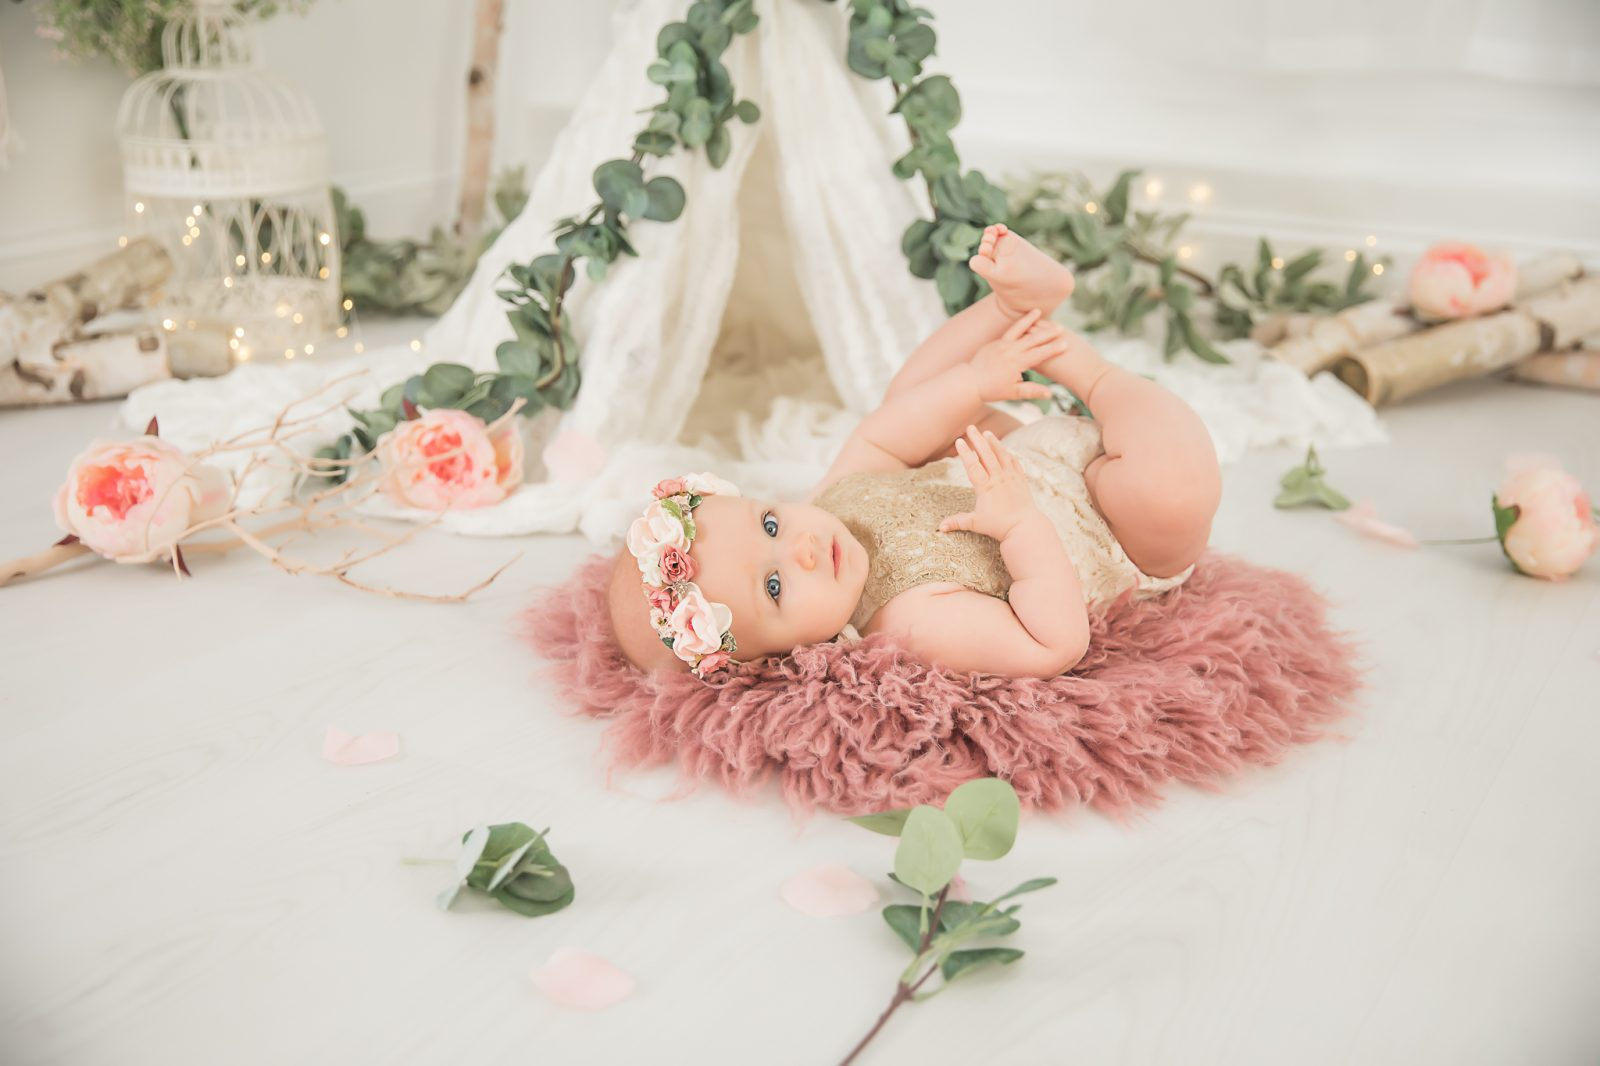 Baby Milestone Photography in MA and Surrounding Areas